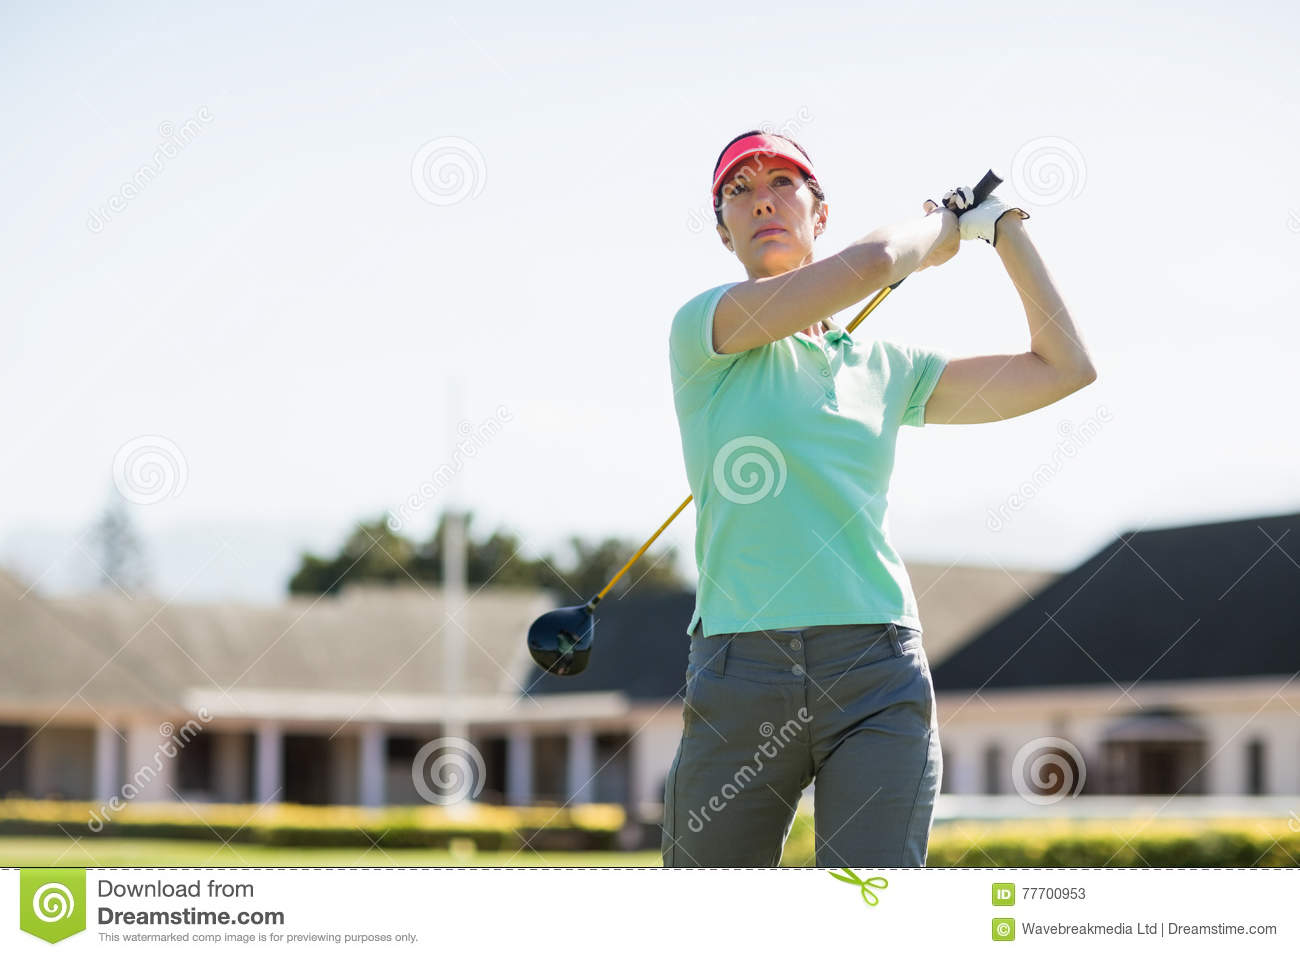 Low angle view of golfer woman taking shot